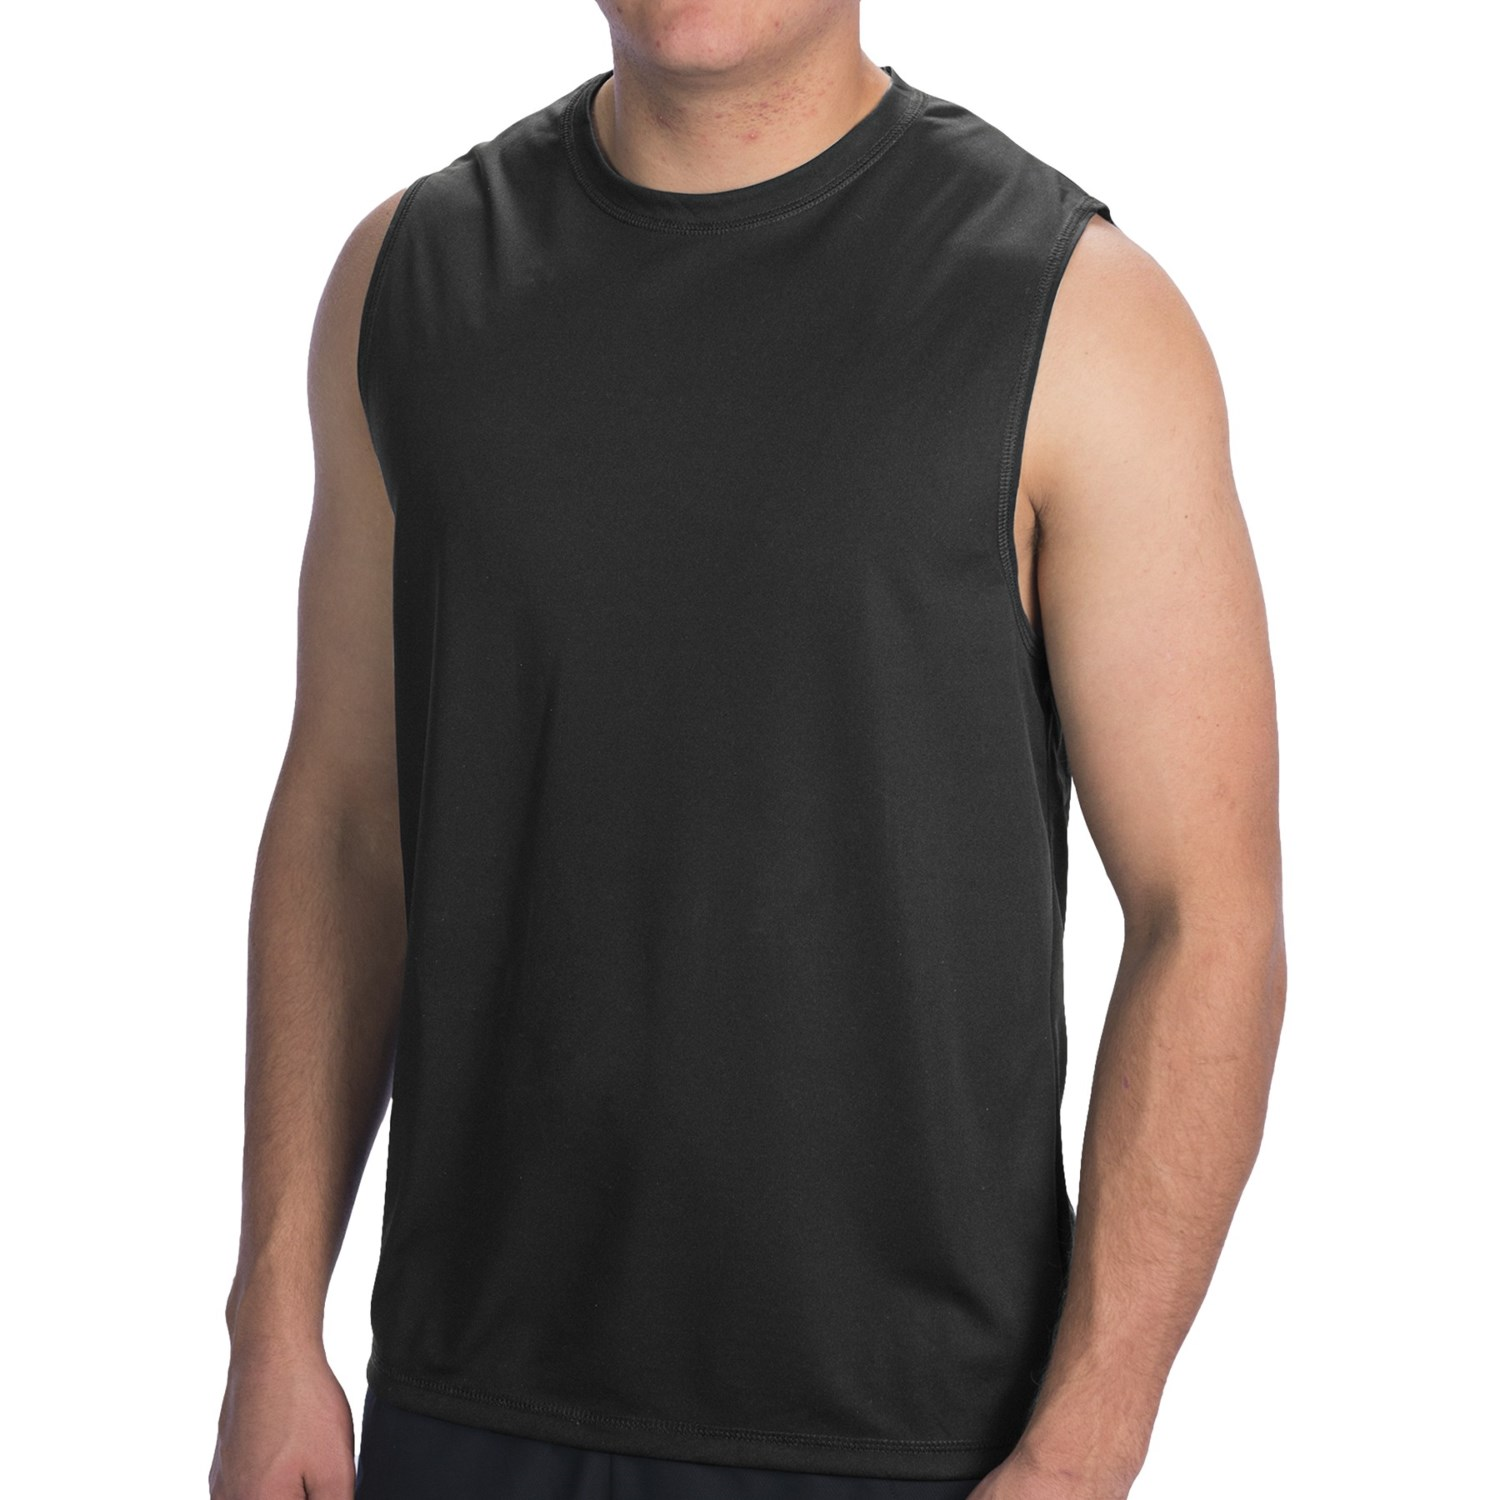 Muscle Shirts Men's muscle shirts really reveal the muscles of the arms and shoulders. We have a huge selection from plain colors and styles to clubwear for men.